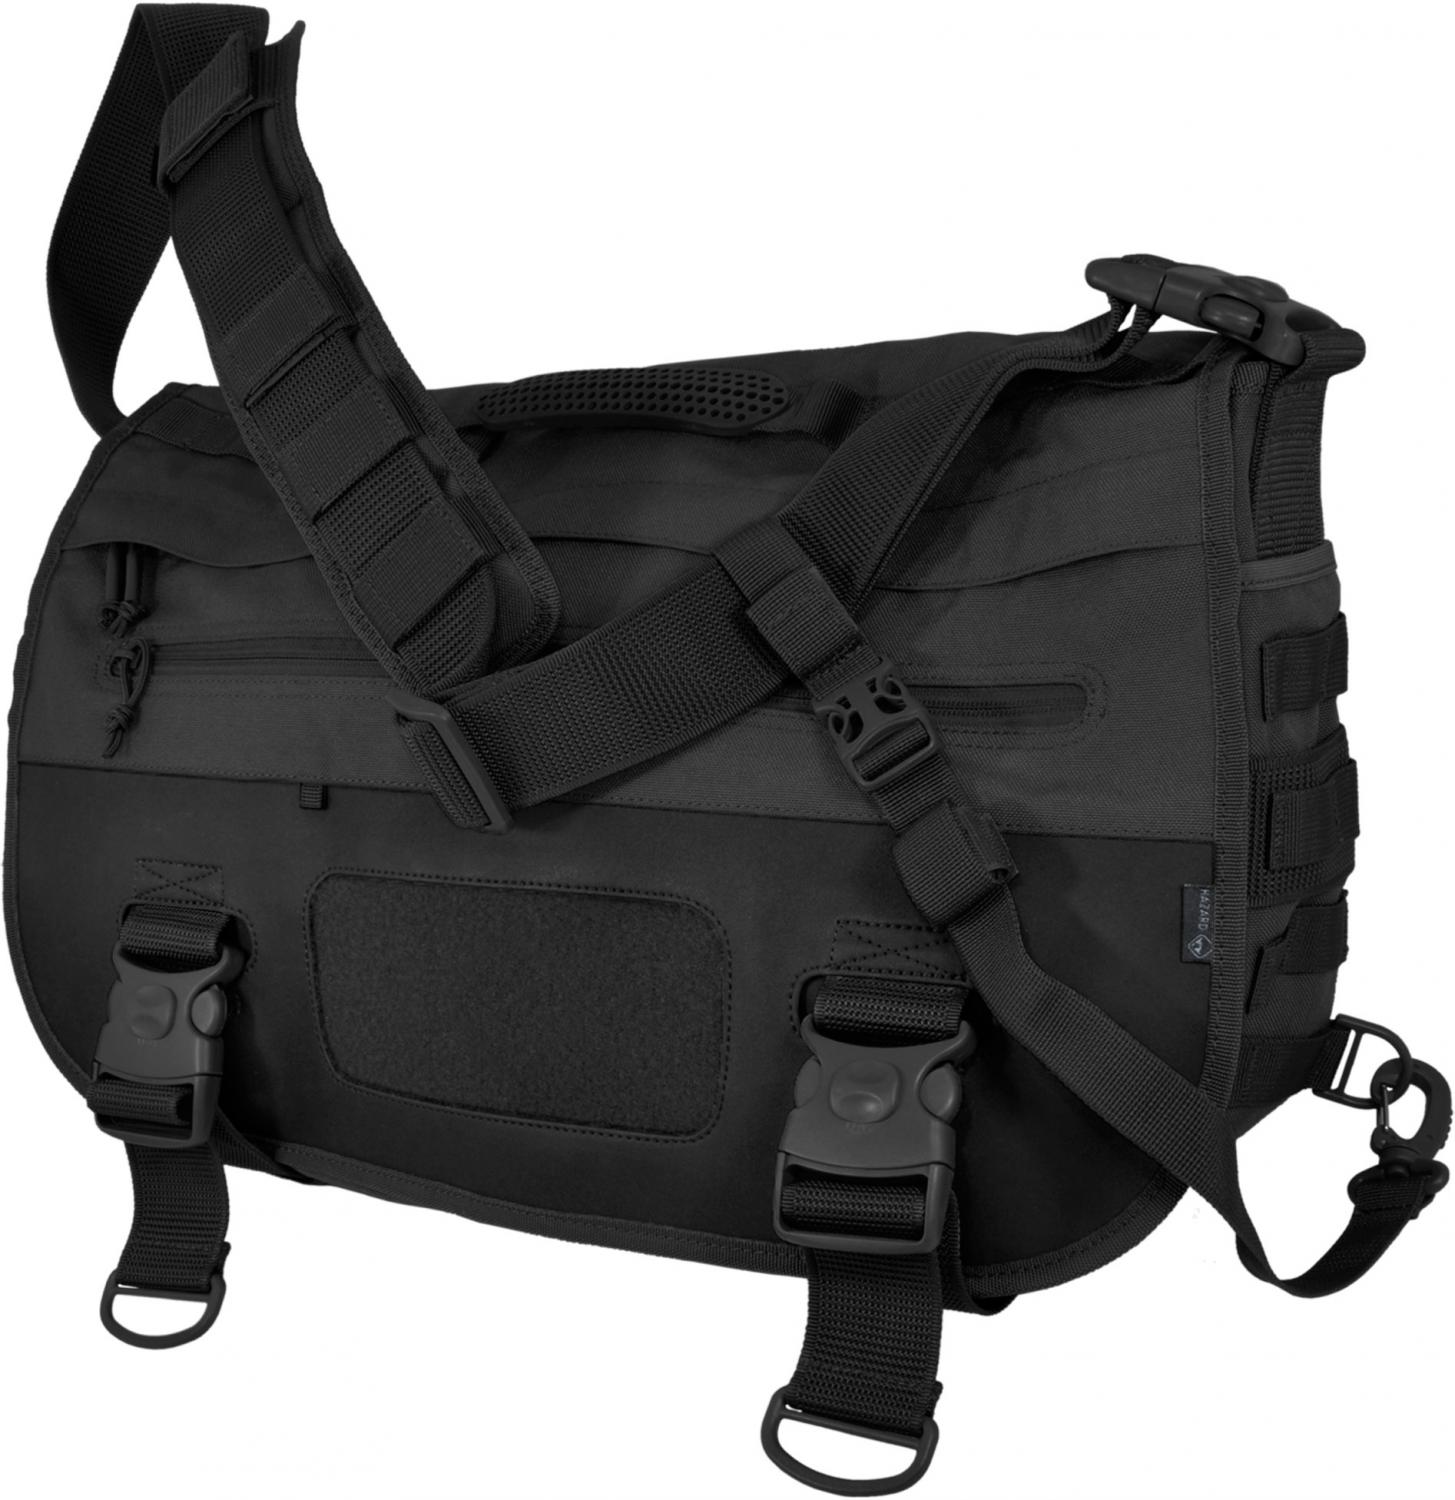 Hazard 4 Defense Courier Tactical Laptop Messenger Bag, Black